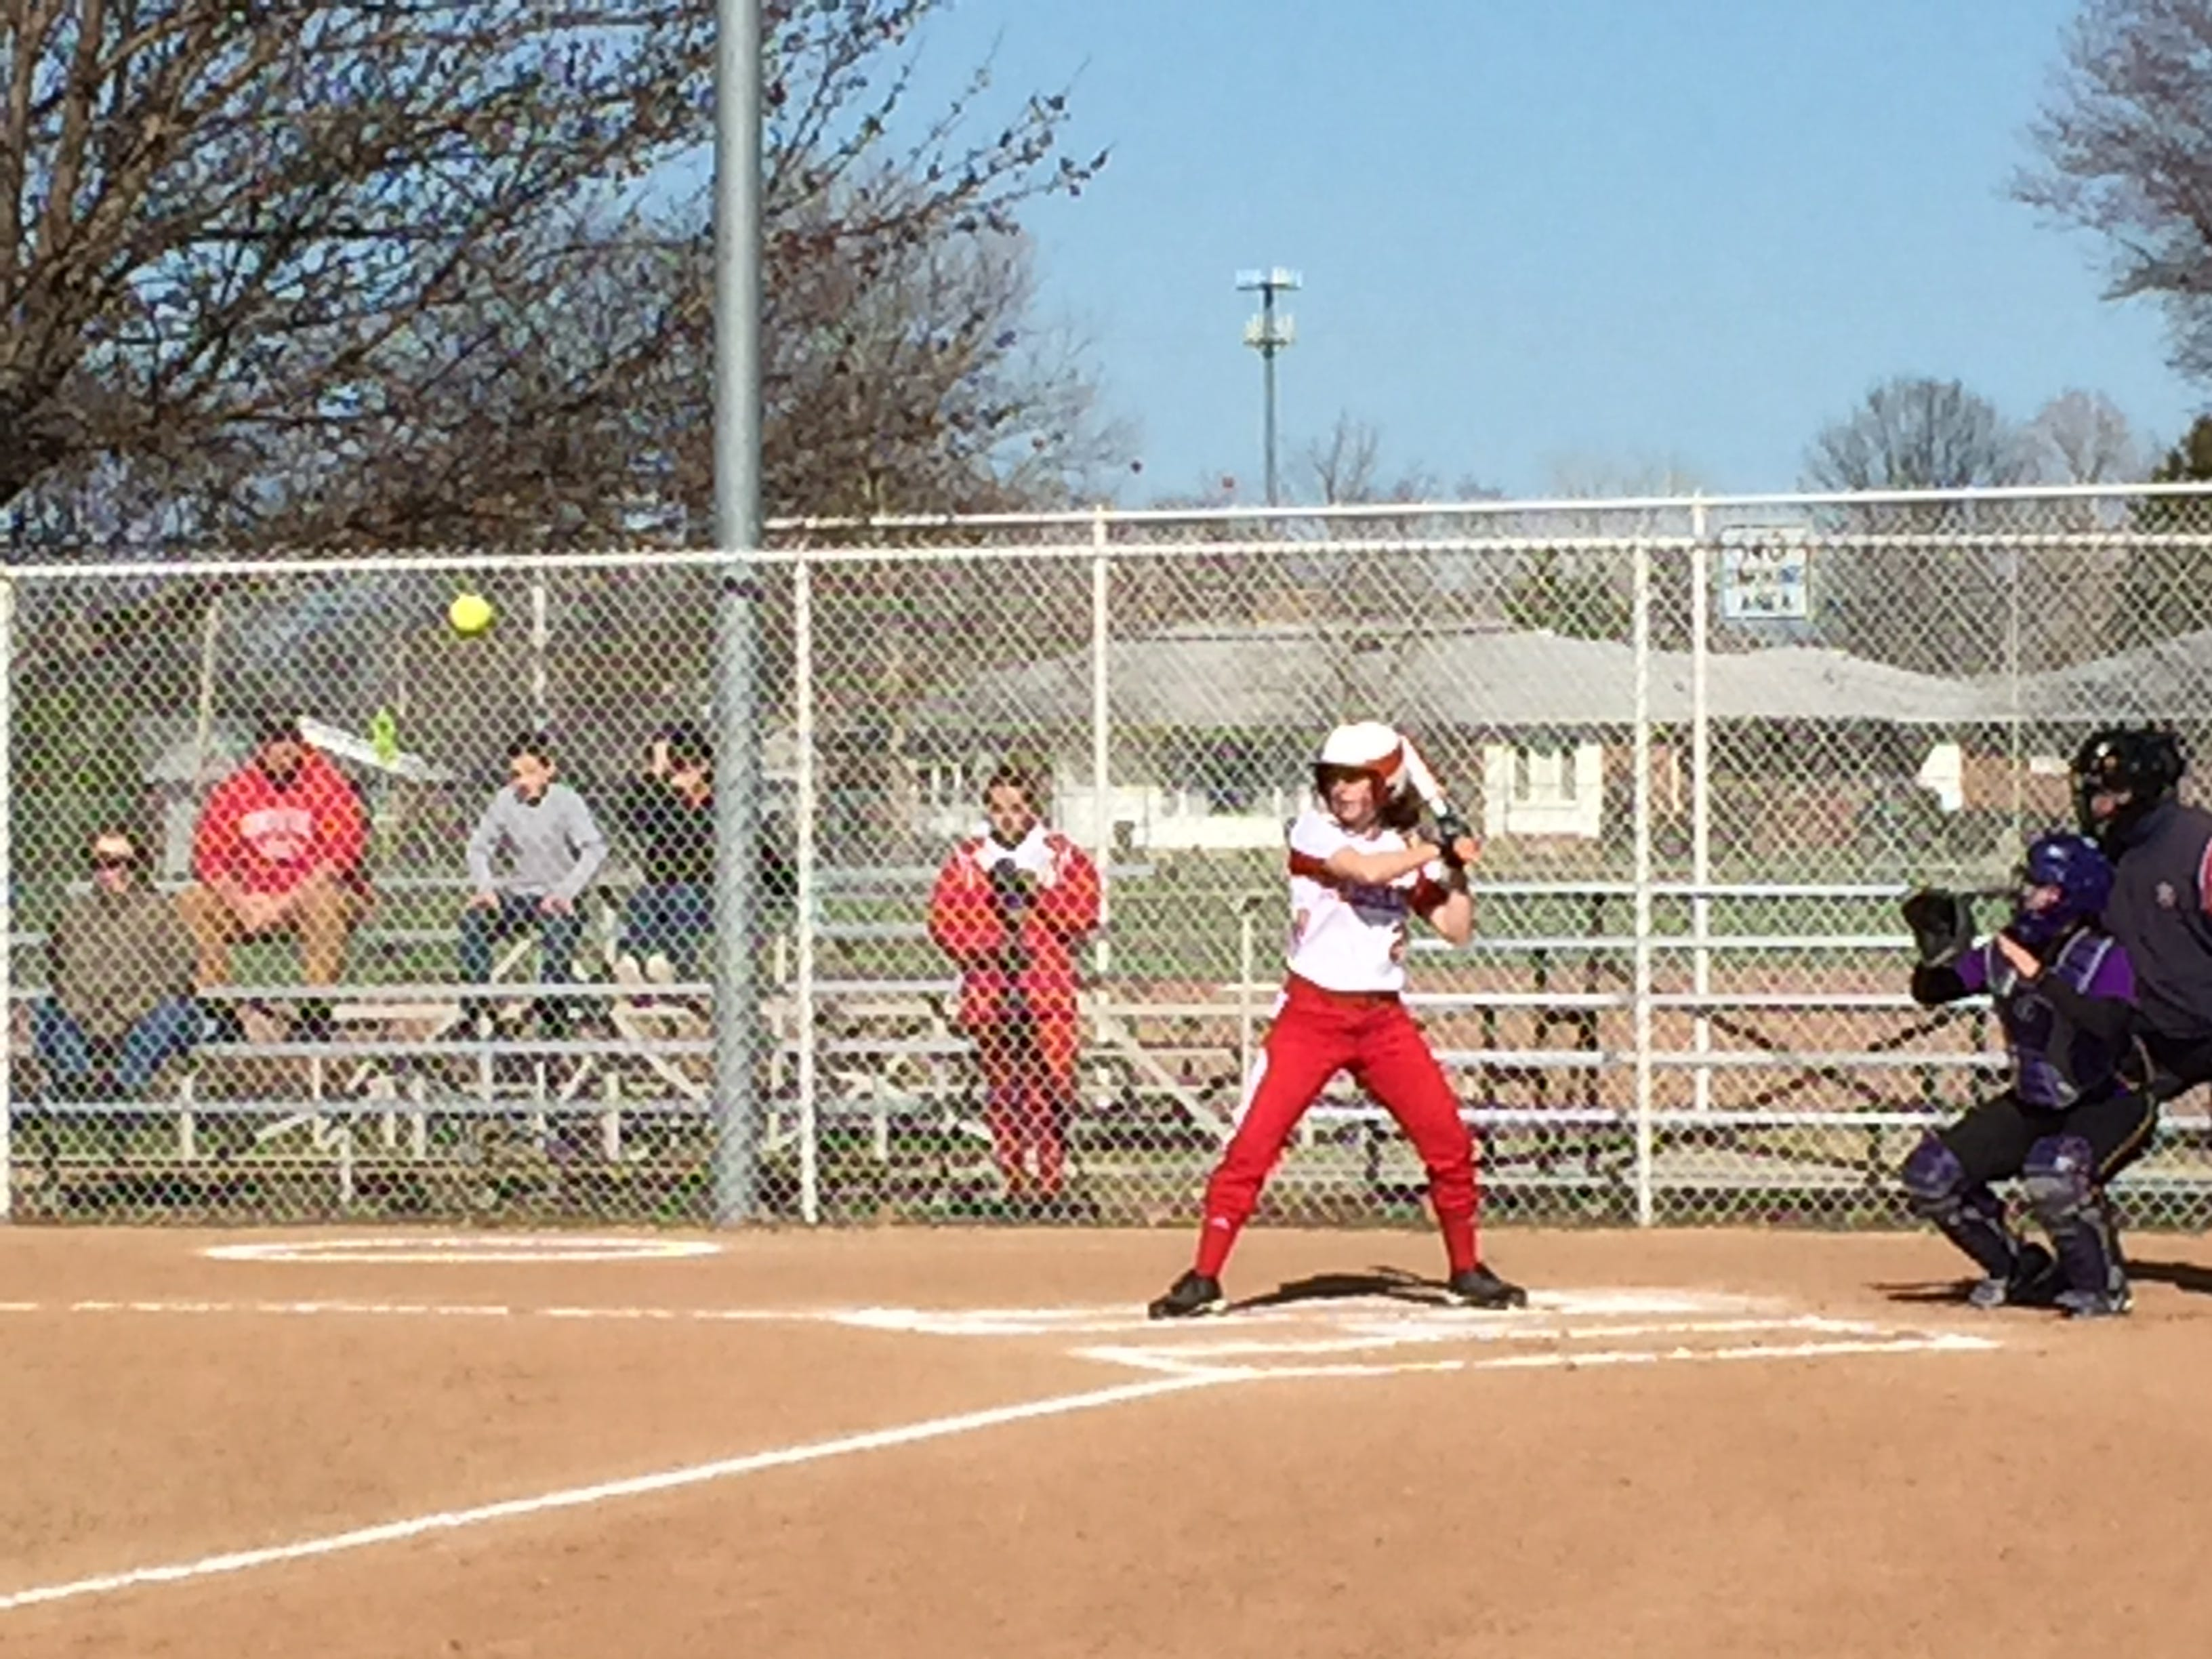 Port Clinton's Taylor Steyer waits on a pitch Friday. Steyer is one of three sisters in the varsity lineup for the Redskins.